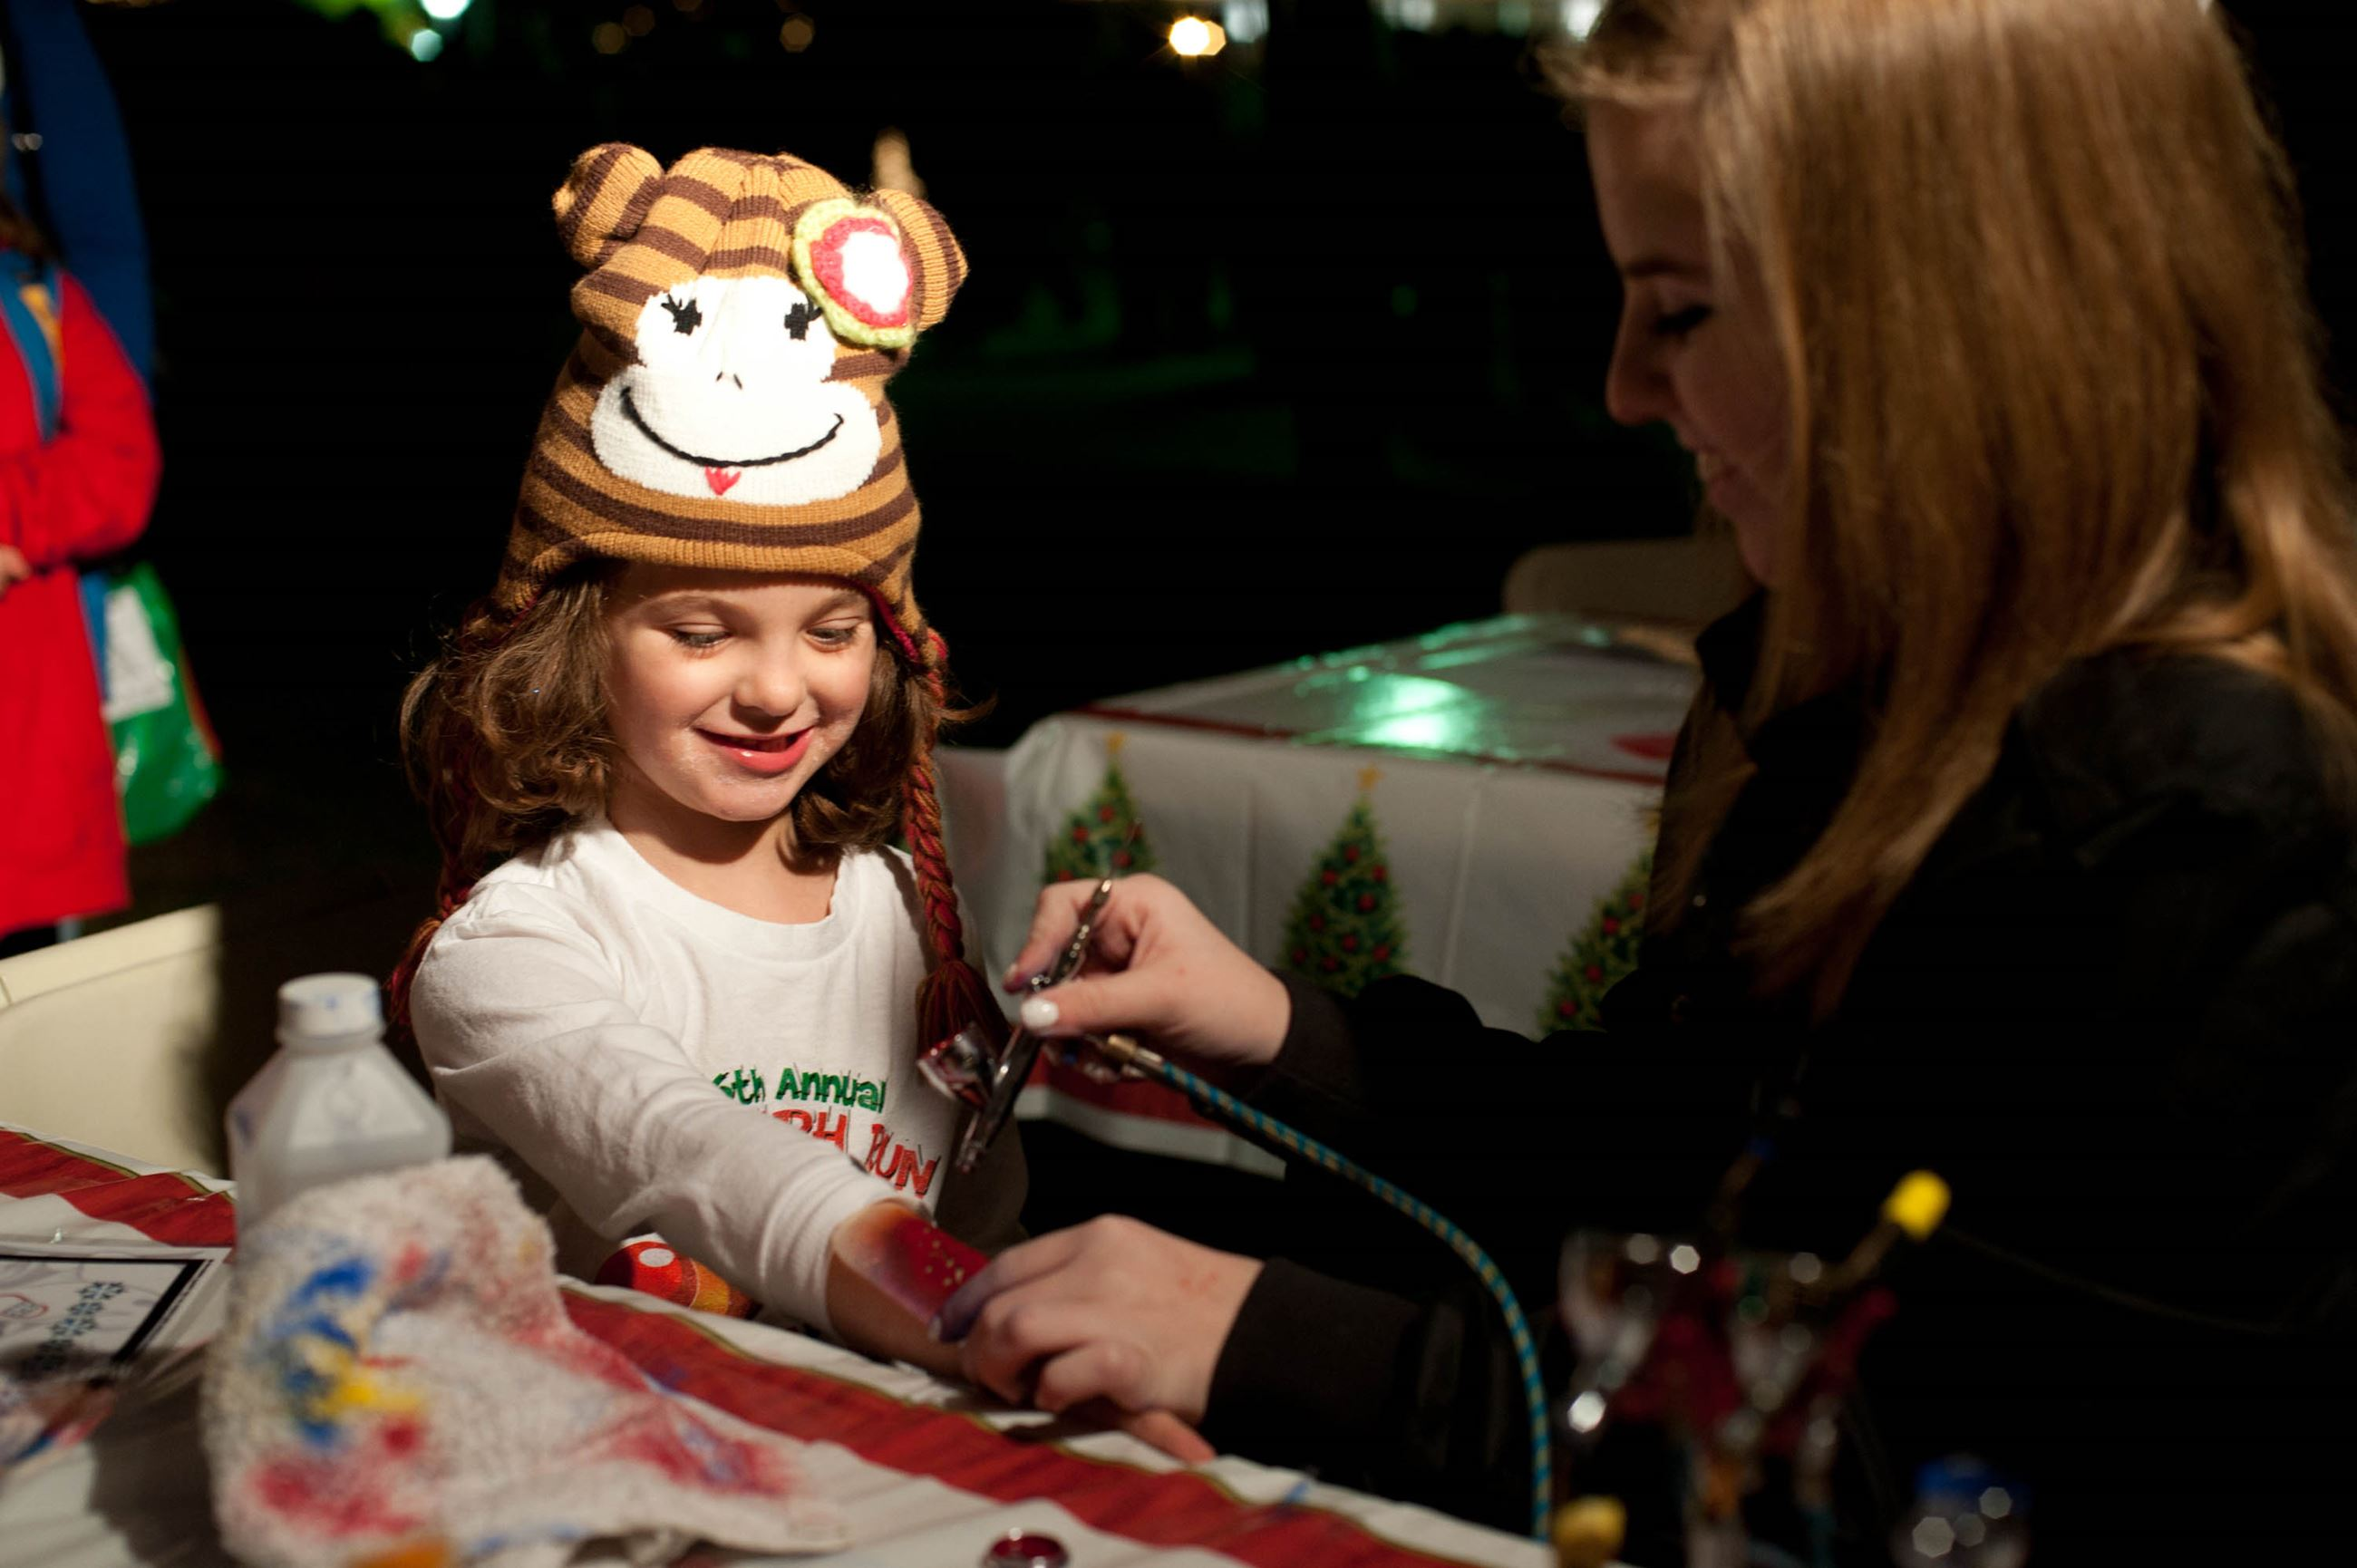 Young girl getting her face painted at the Holly Jolly Celebration